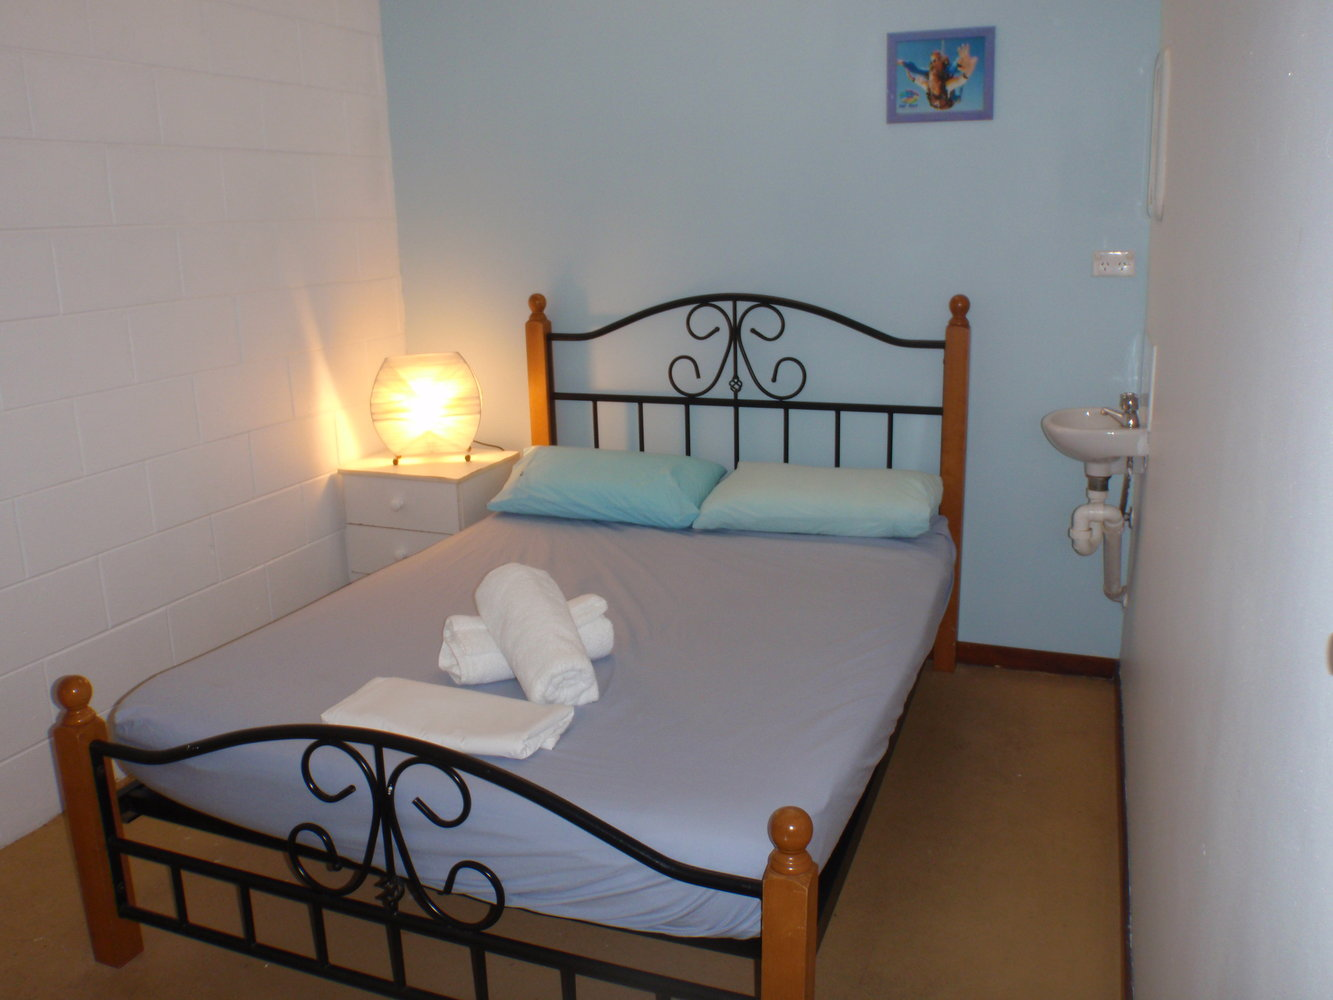 Clean, renovated rooms and linen included